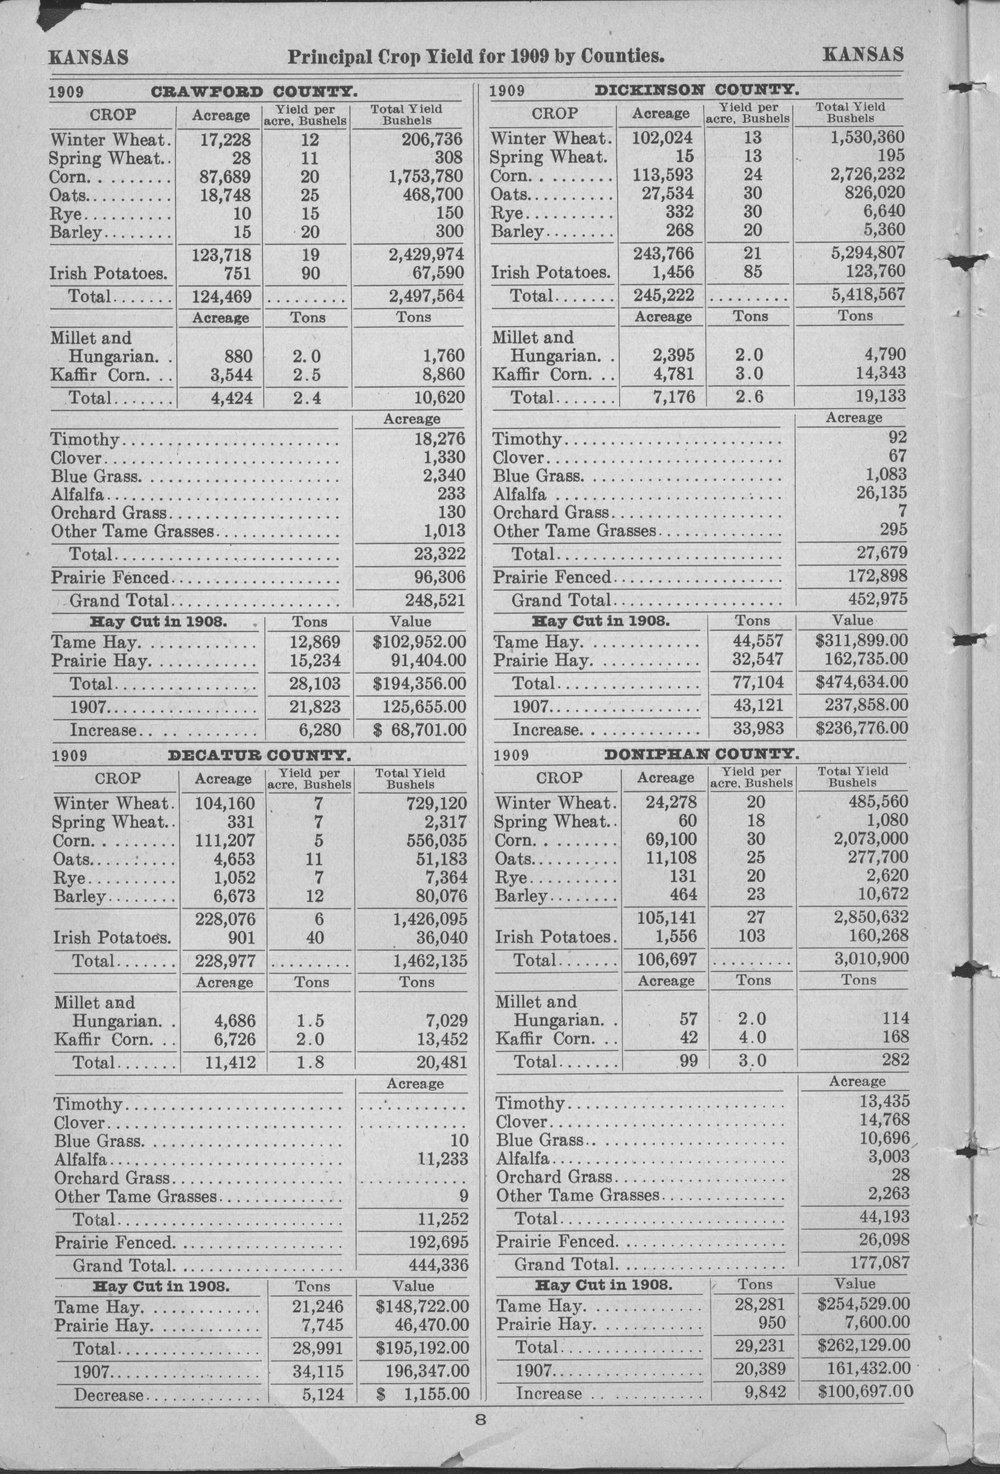 Prinicipal crop yields by counties of Kansas for 1909 - 8